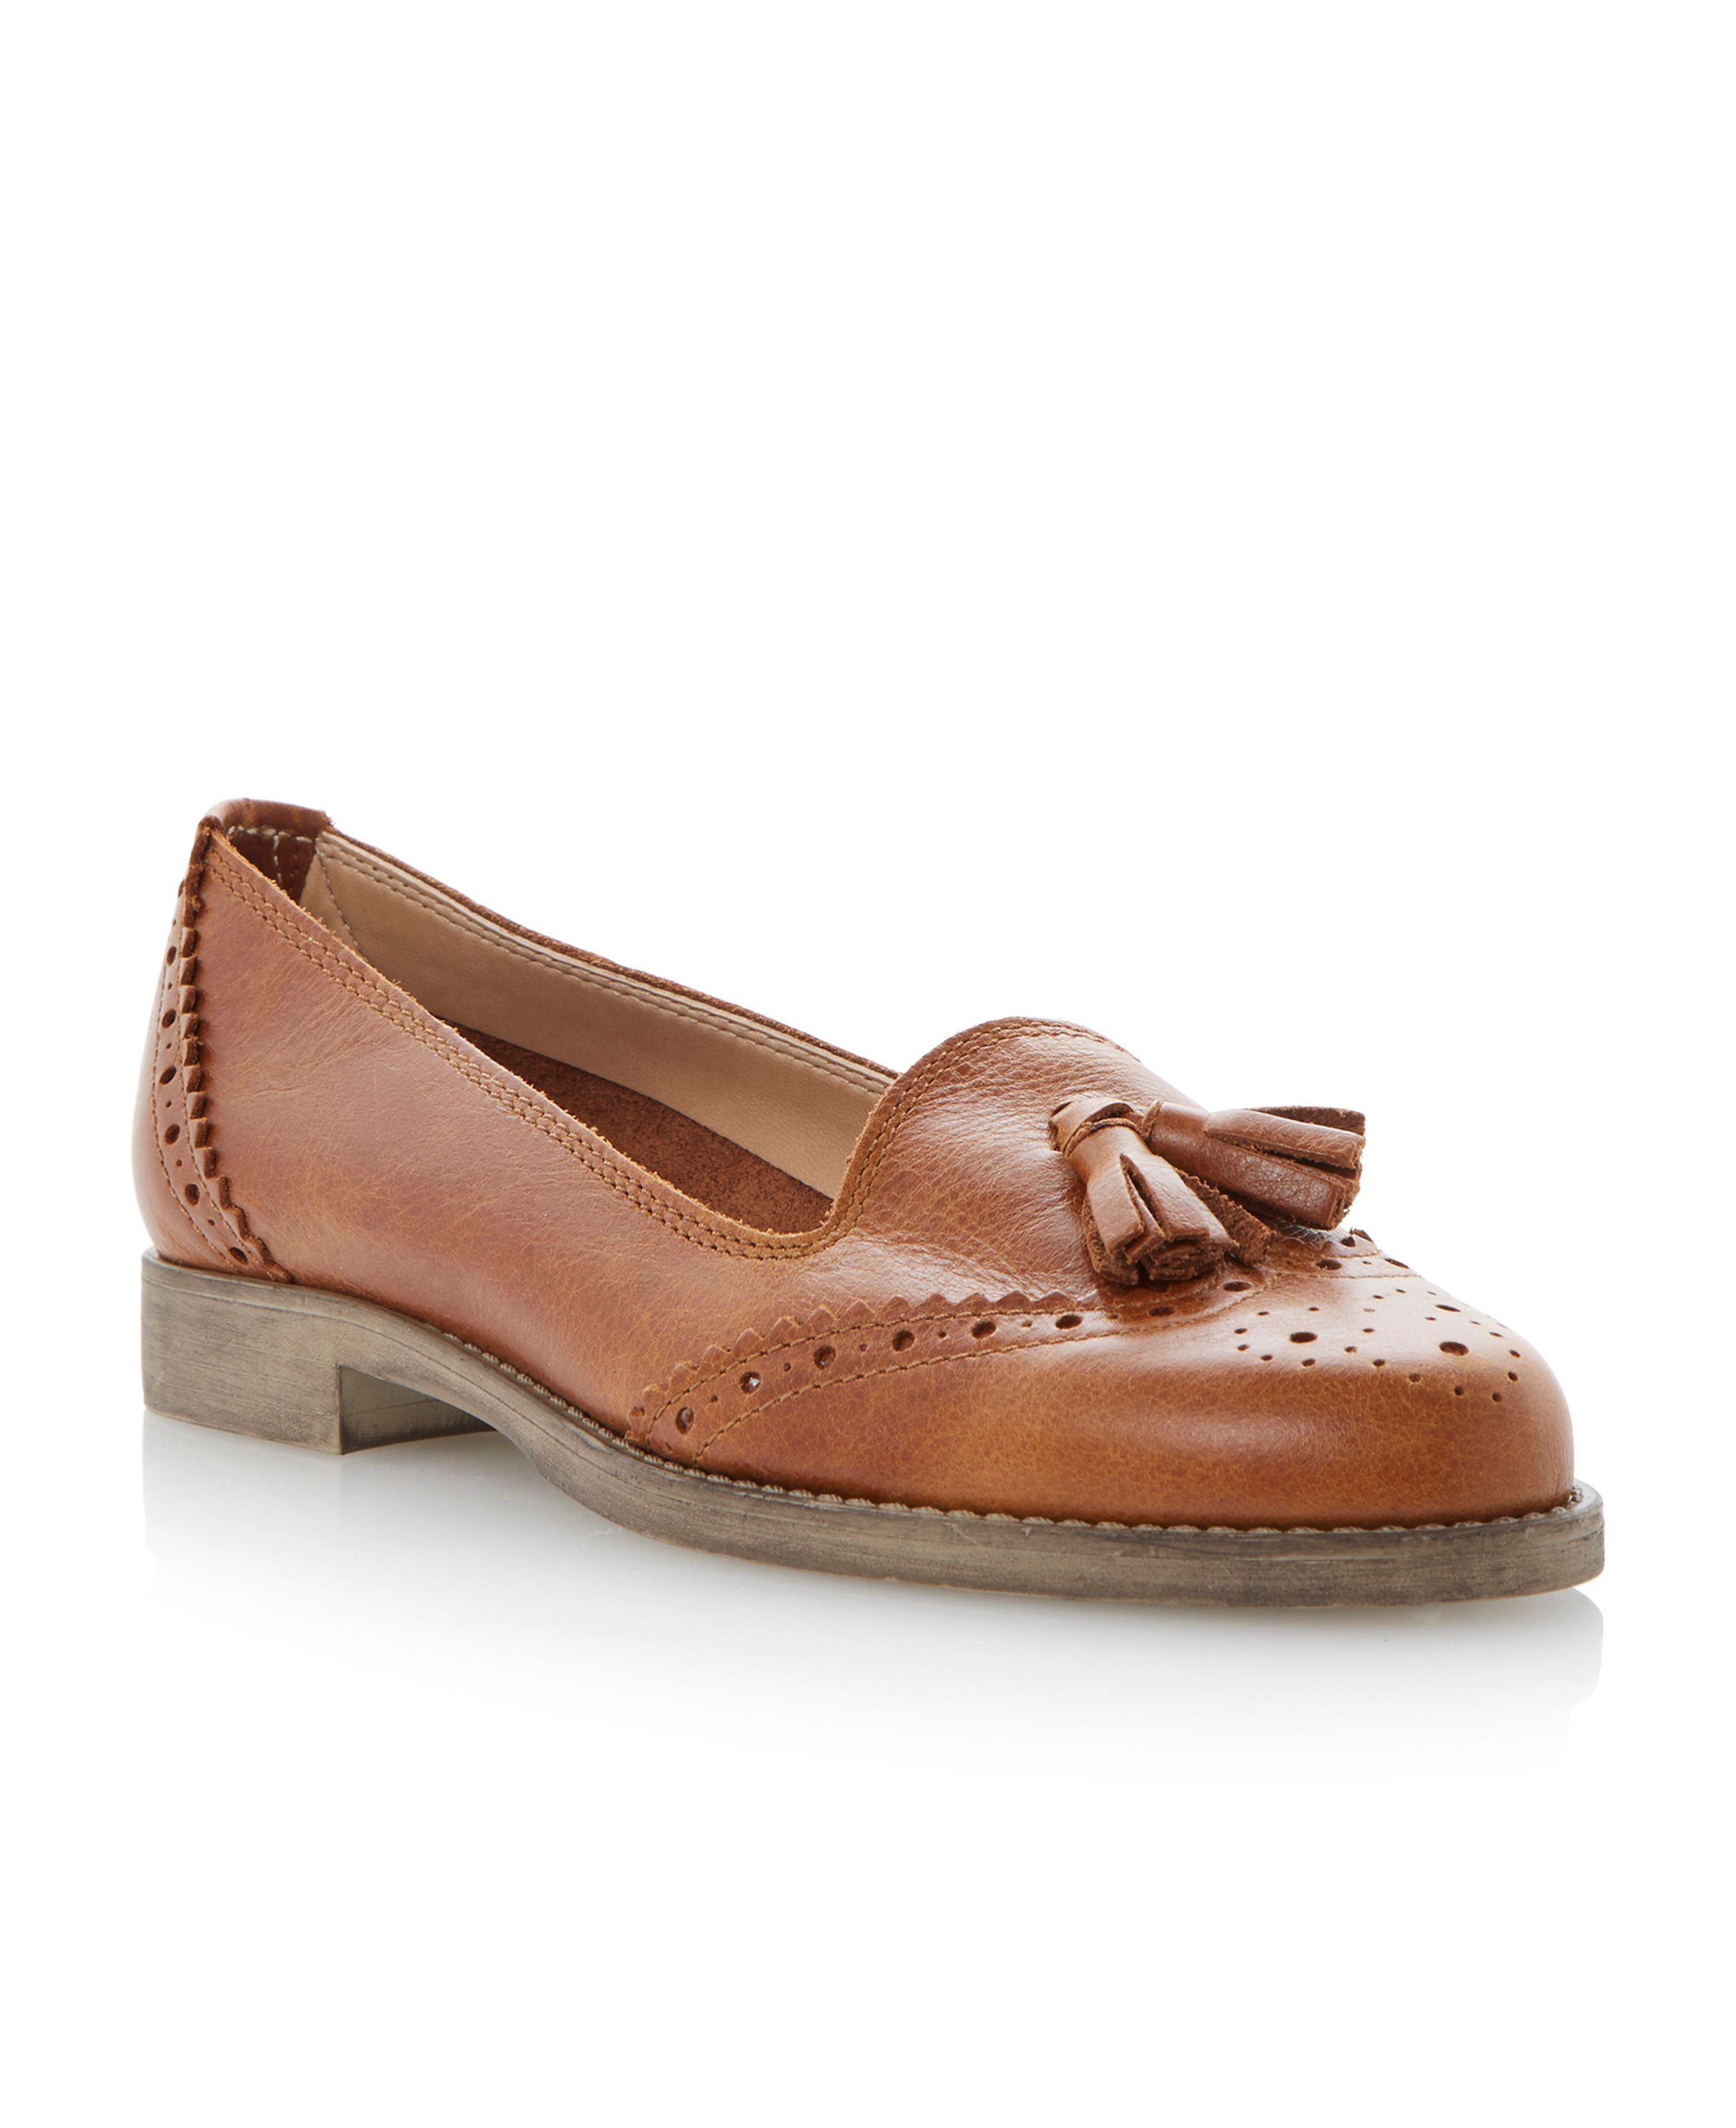 Lazarus mixed material tassel loafer shoes